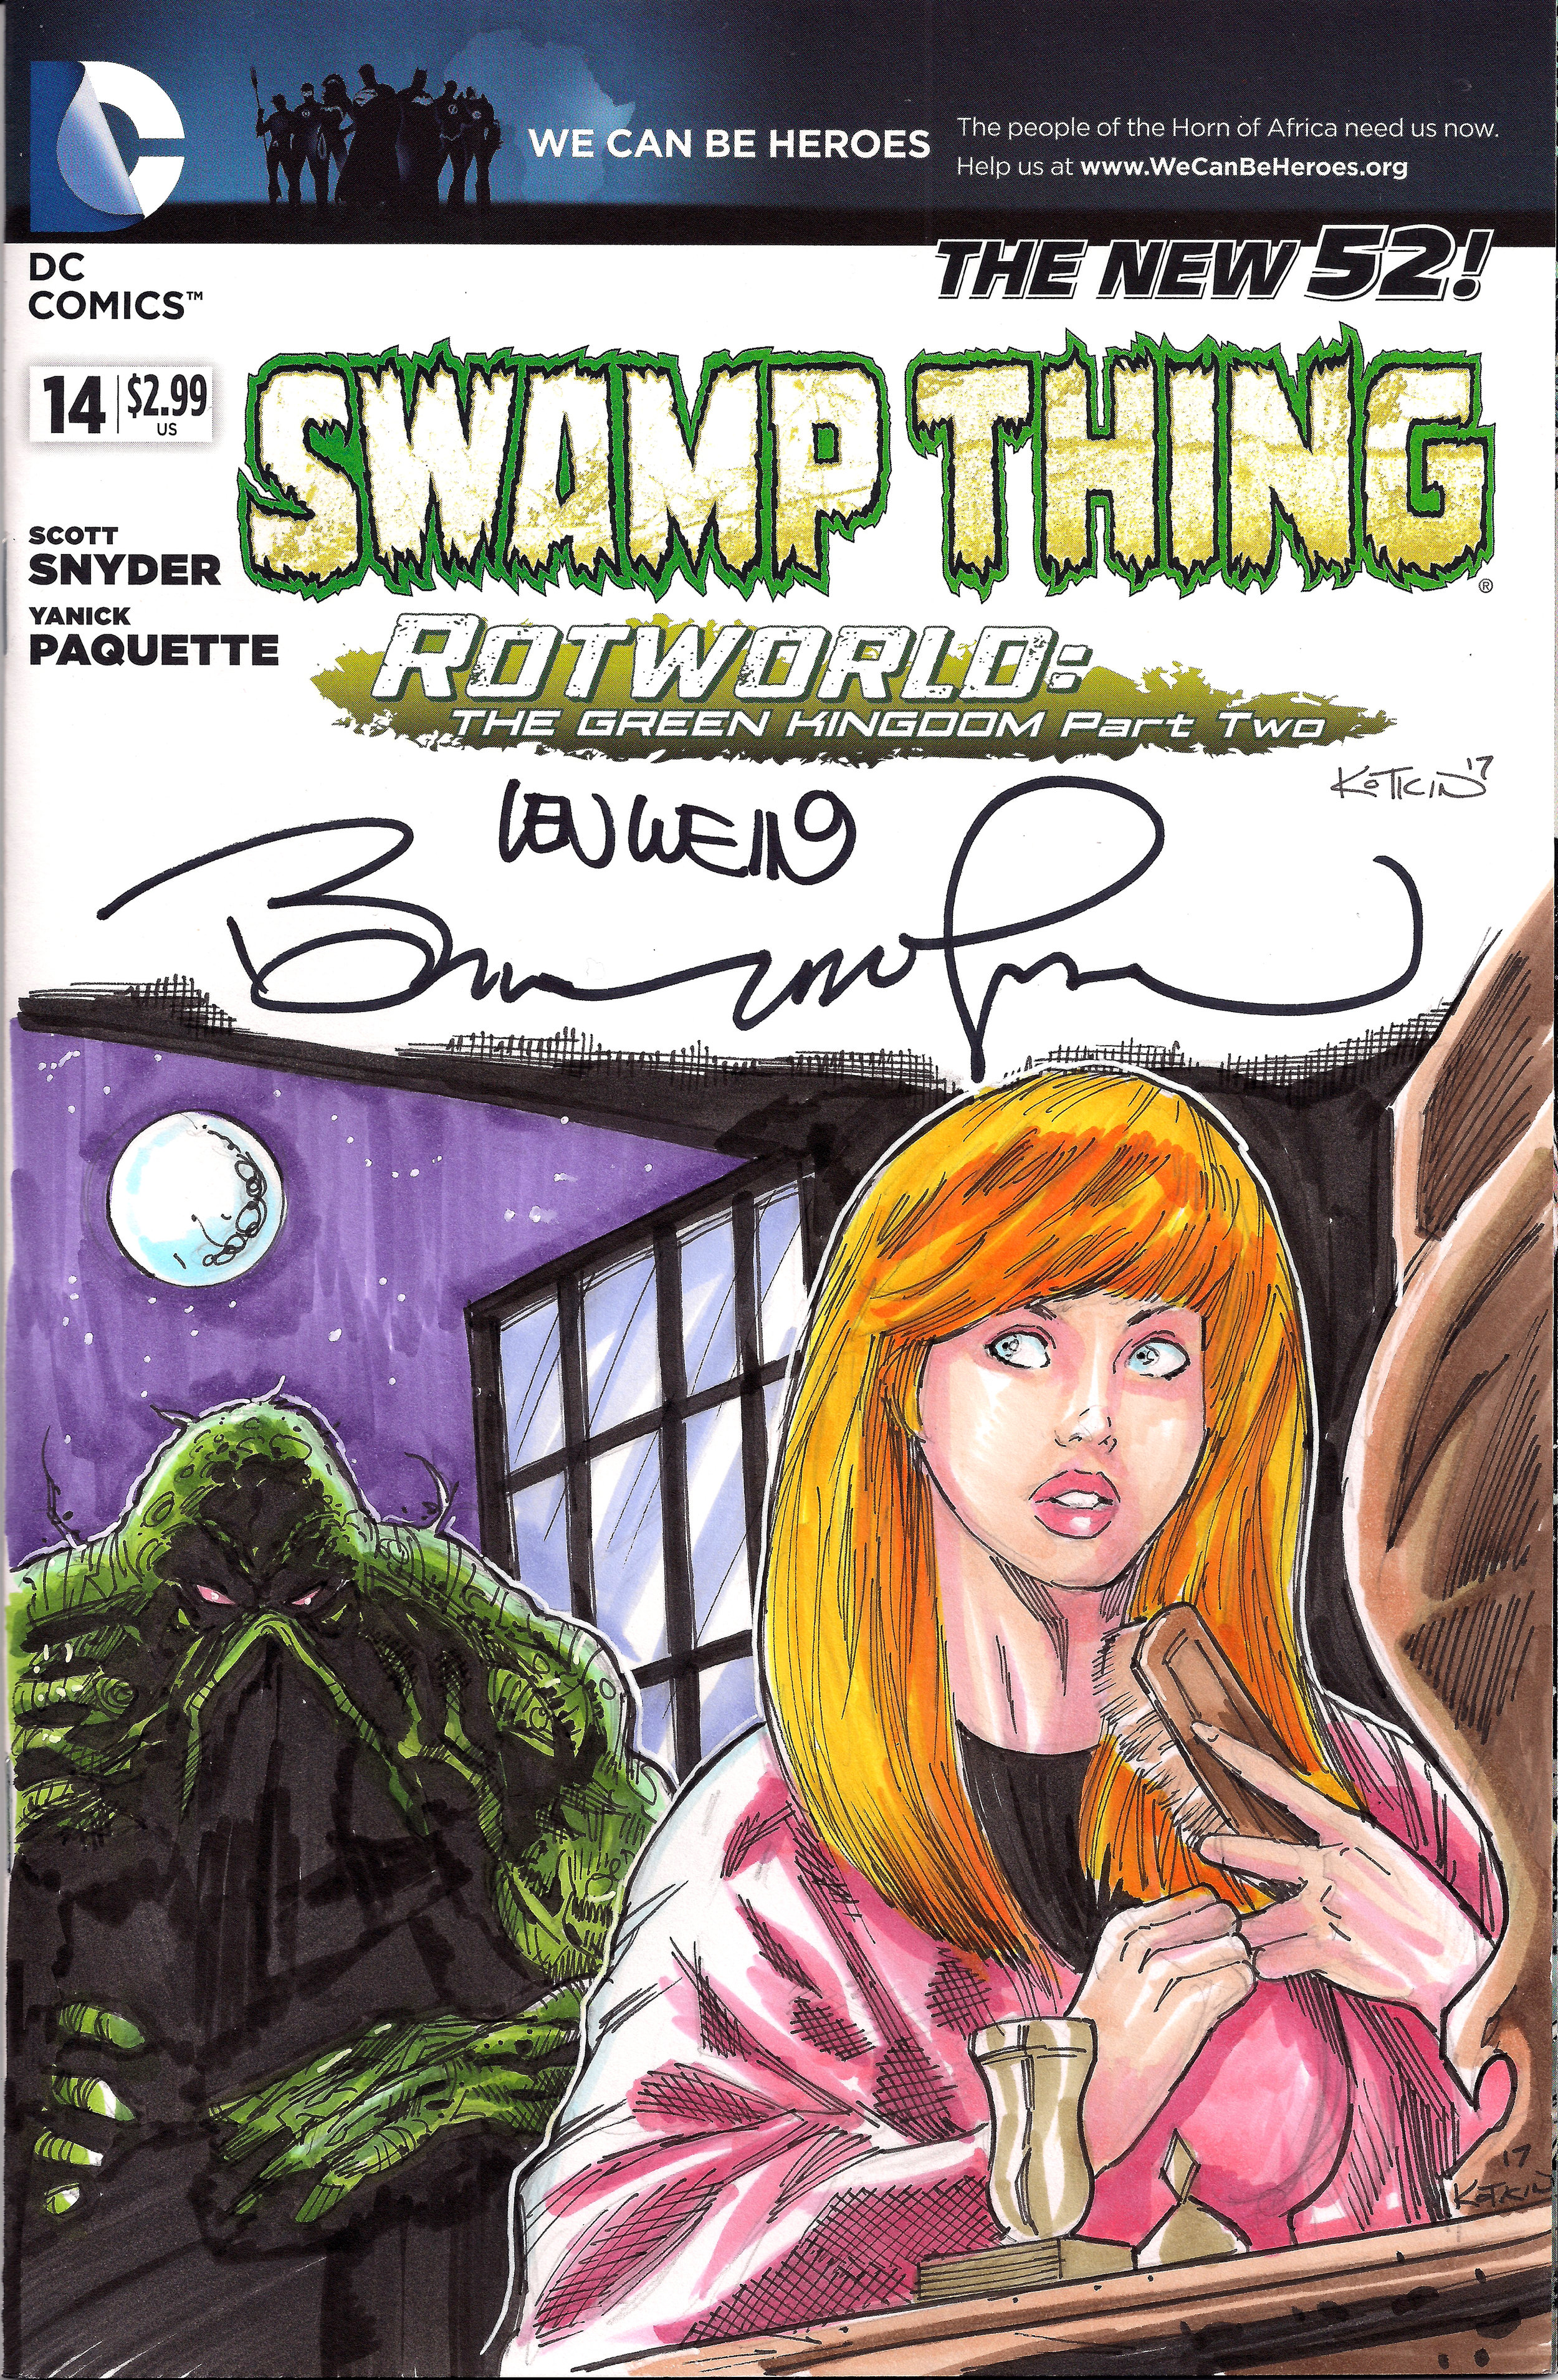 HOUSE OF MYSTERY SWAMP THING.jpg